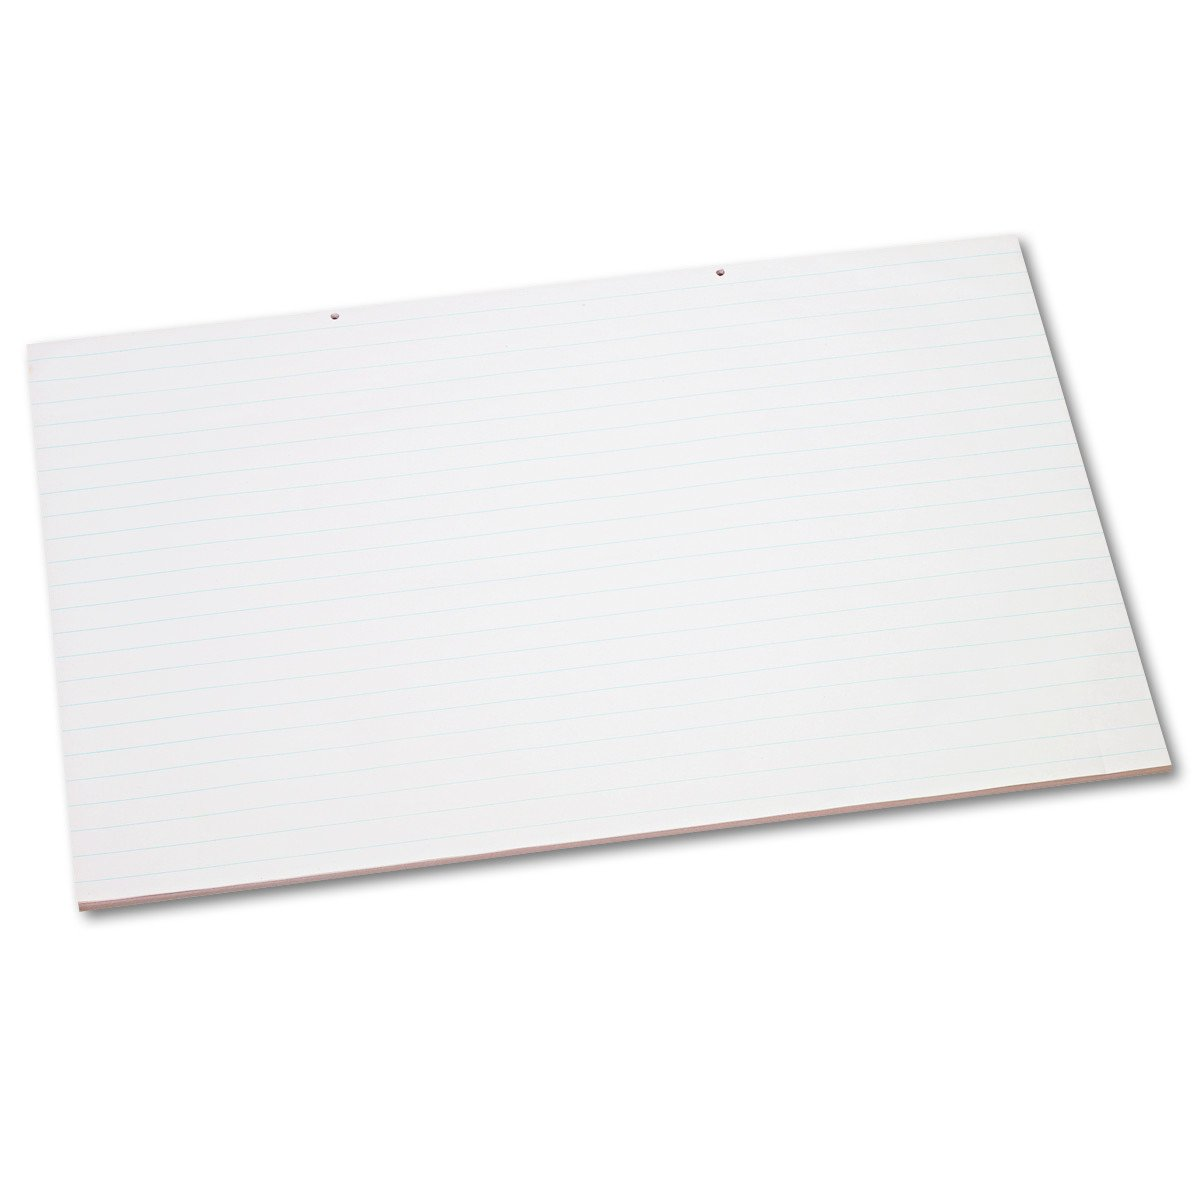 Pacon 3051 Primary Chart Pad w/1in Rule, 24 x 36, White, 100 Sheets